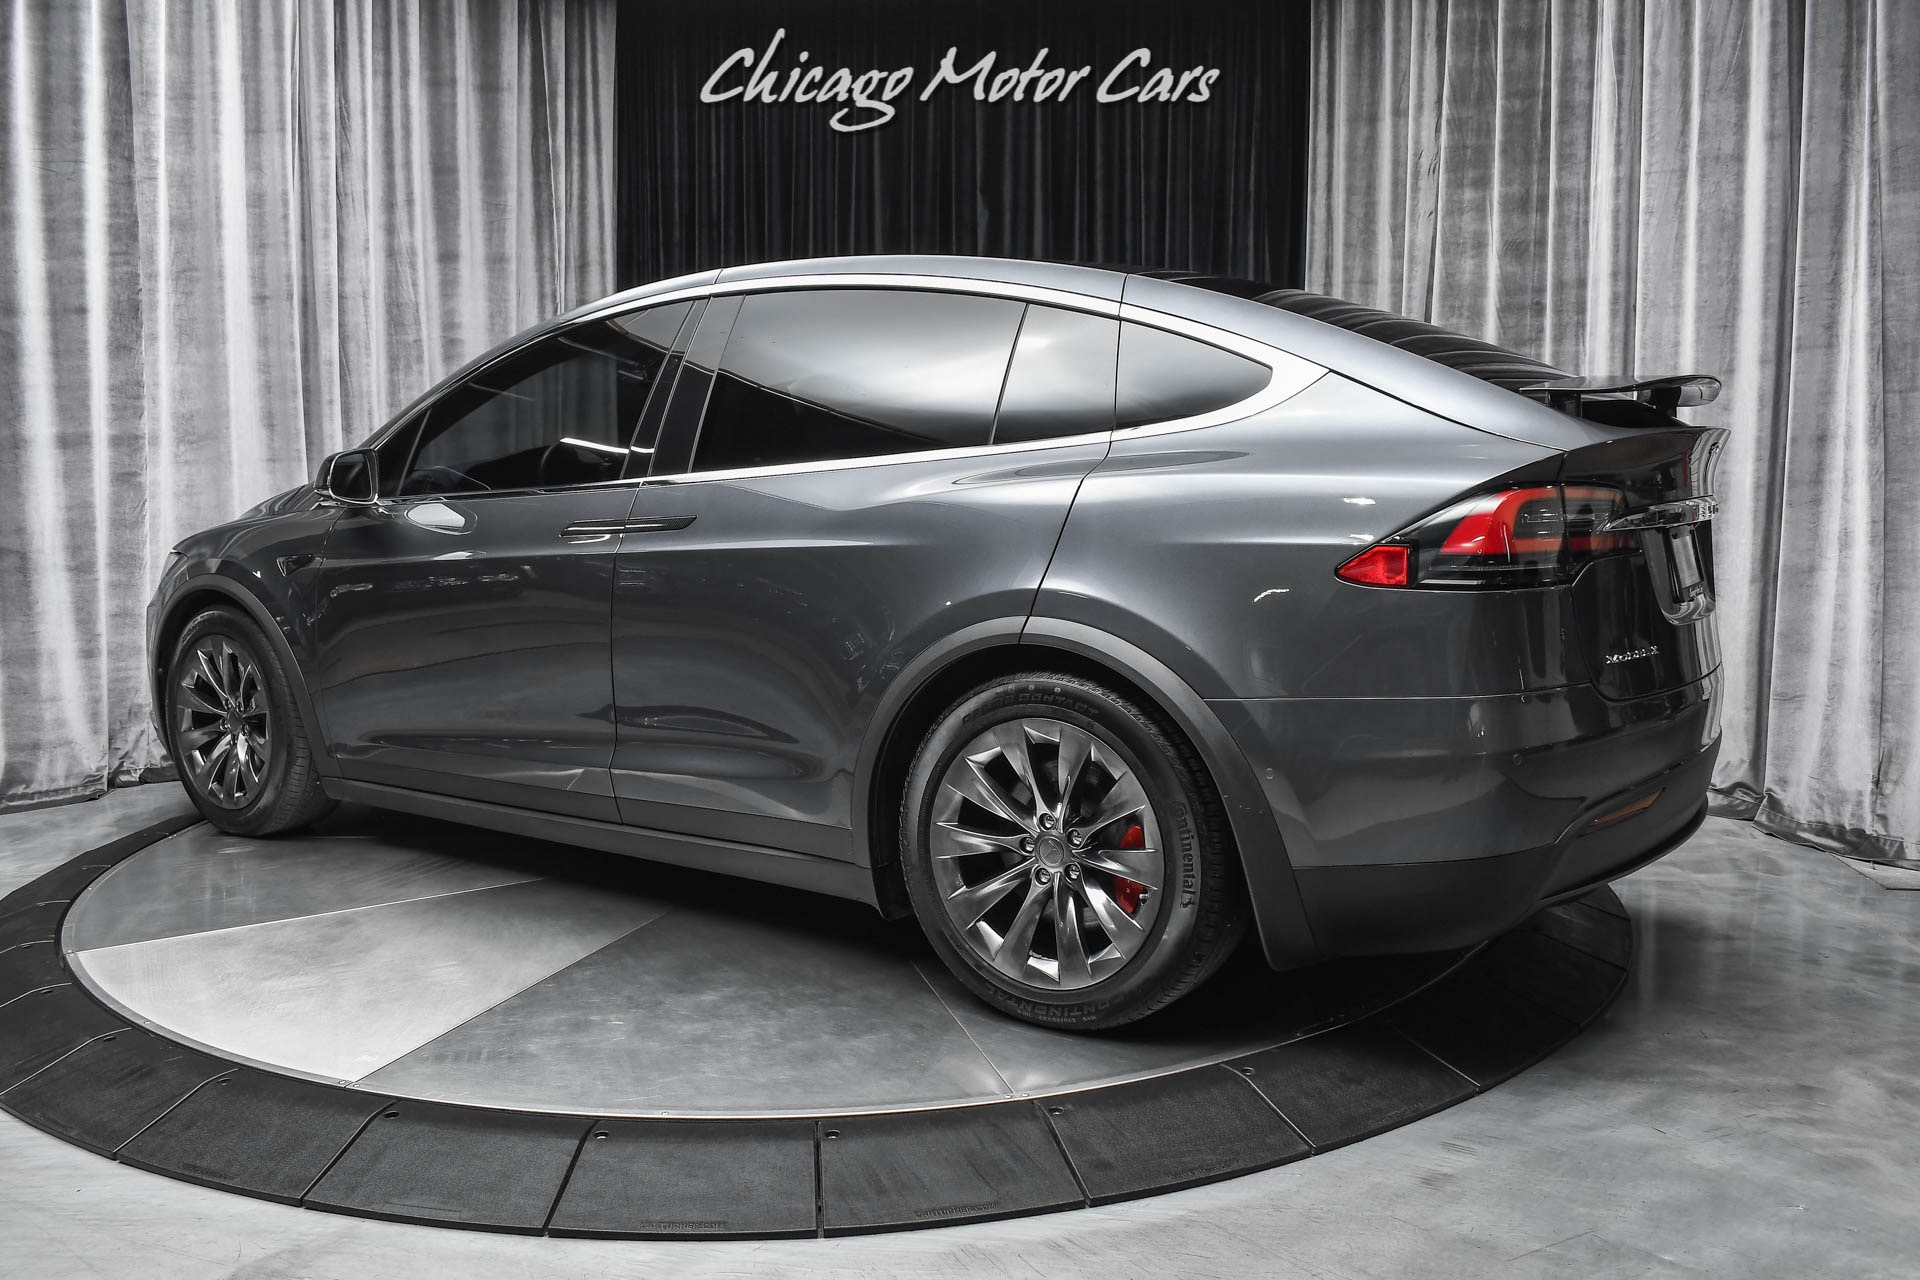 Used-2018-Tesla-Model-X-100D-SUV-PREMIUM-UPGRADES-PACKAGE